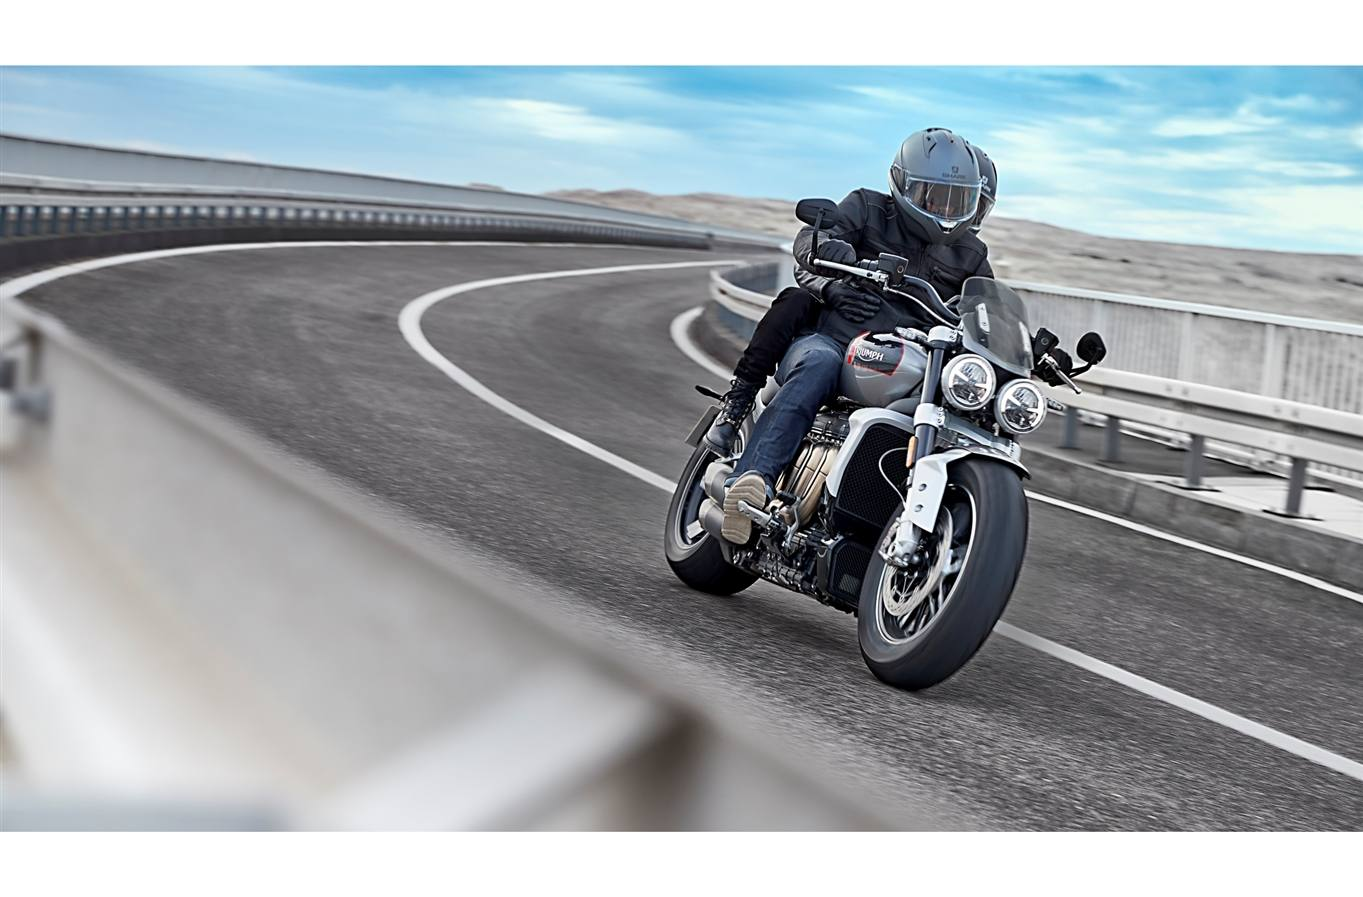 2020 Triumph Rocket 3 GT for sale in Tallahassee, FL